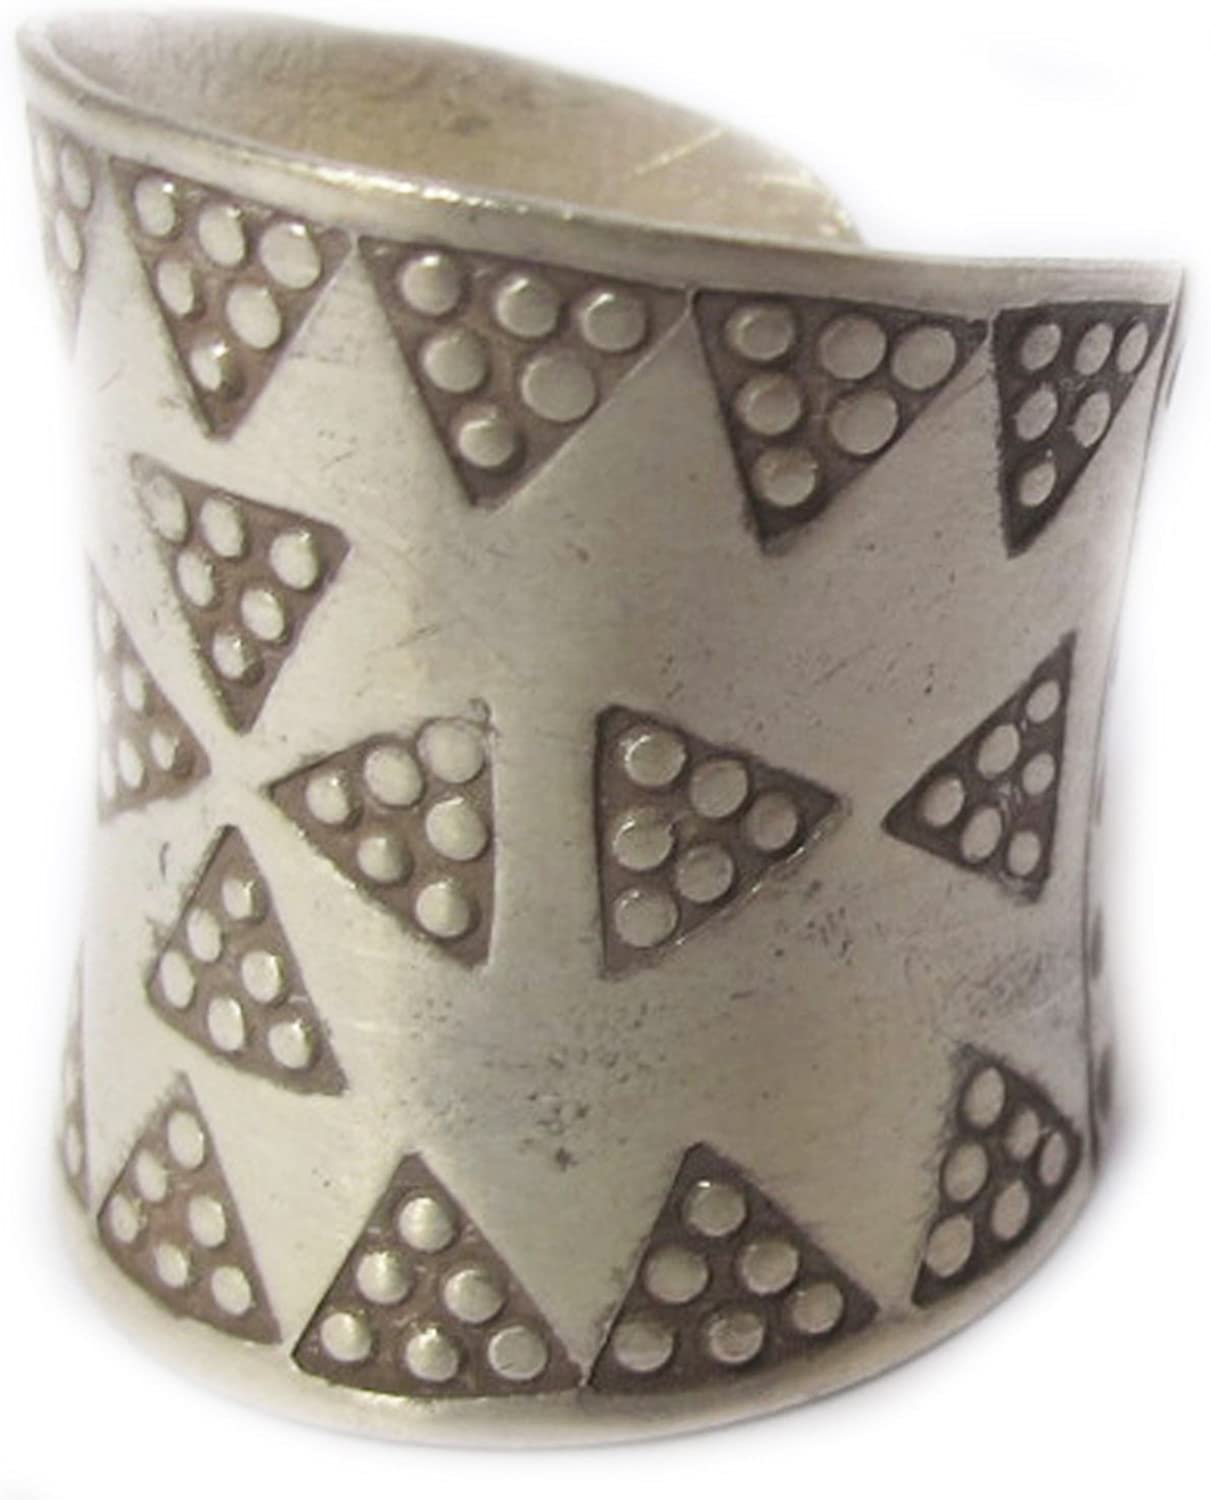 By Handmade Adjustable 7-8{KAREAN HILL TRIBE RING BOX 1004 Beautiful Ring Thai Karen Hilltribe Silver Ring Weight 7.46 G.. Size 7 No